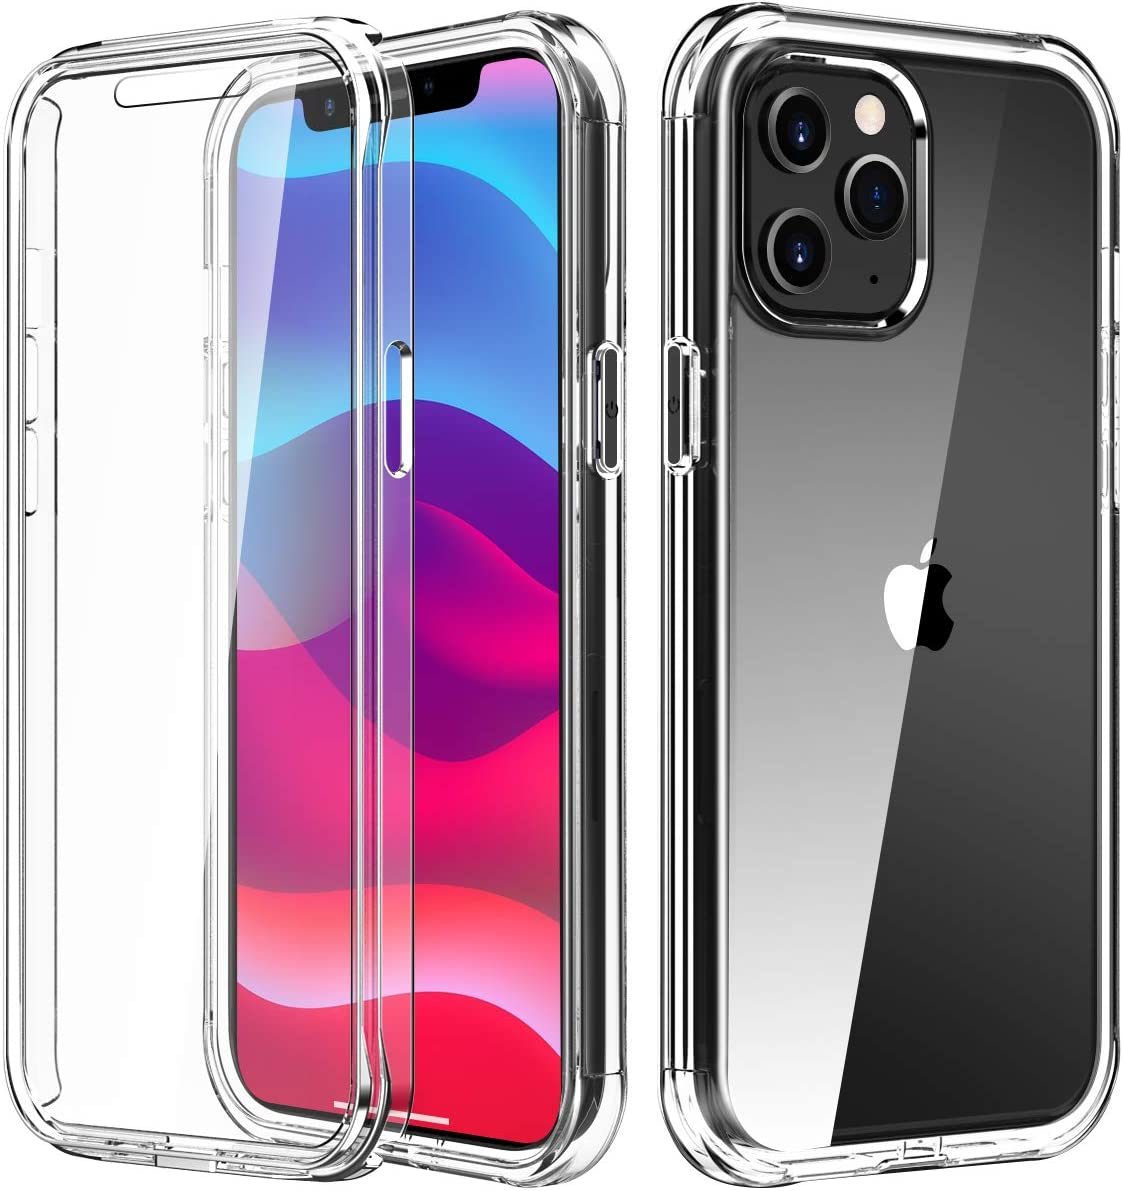 PIXIU Compatible with iPhone 12/12 pro Case Clear built with Screen Protector , Lightweight Full Body Shockproof Protective TPU Slim case cover for Apple iPhone 12 pro 6.1 inch 2020